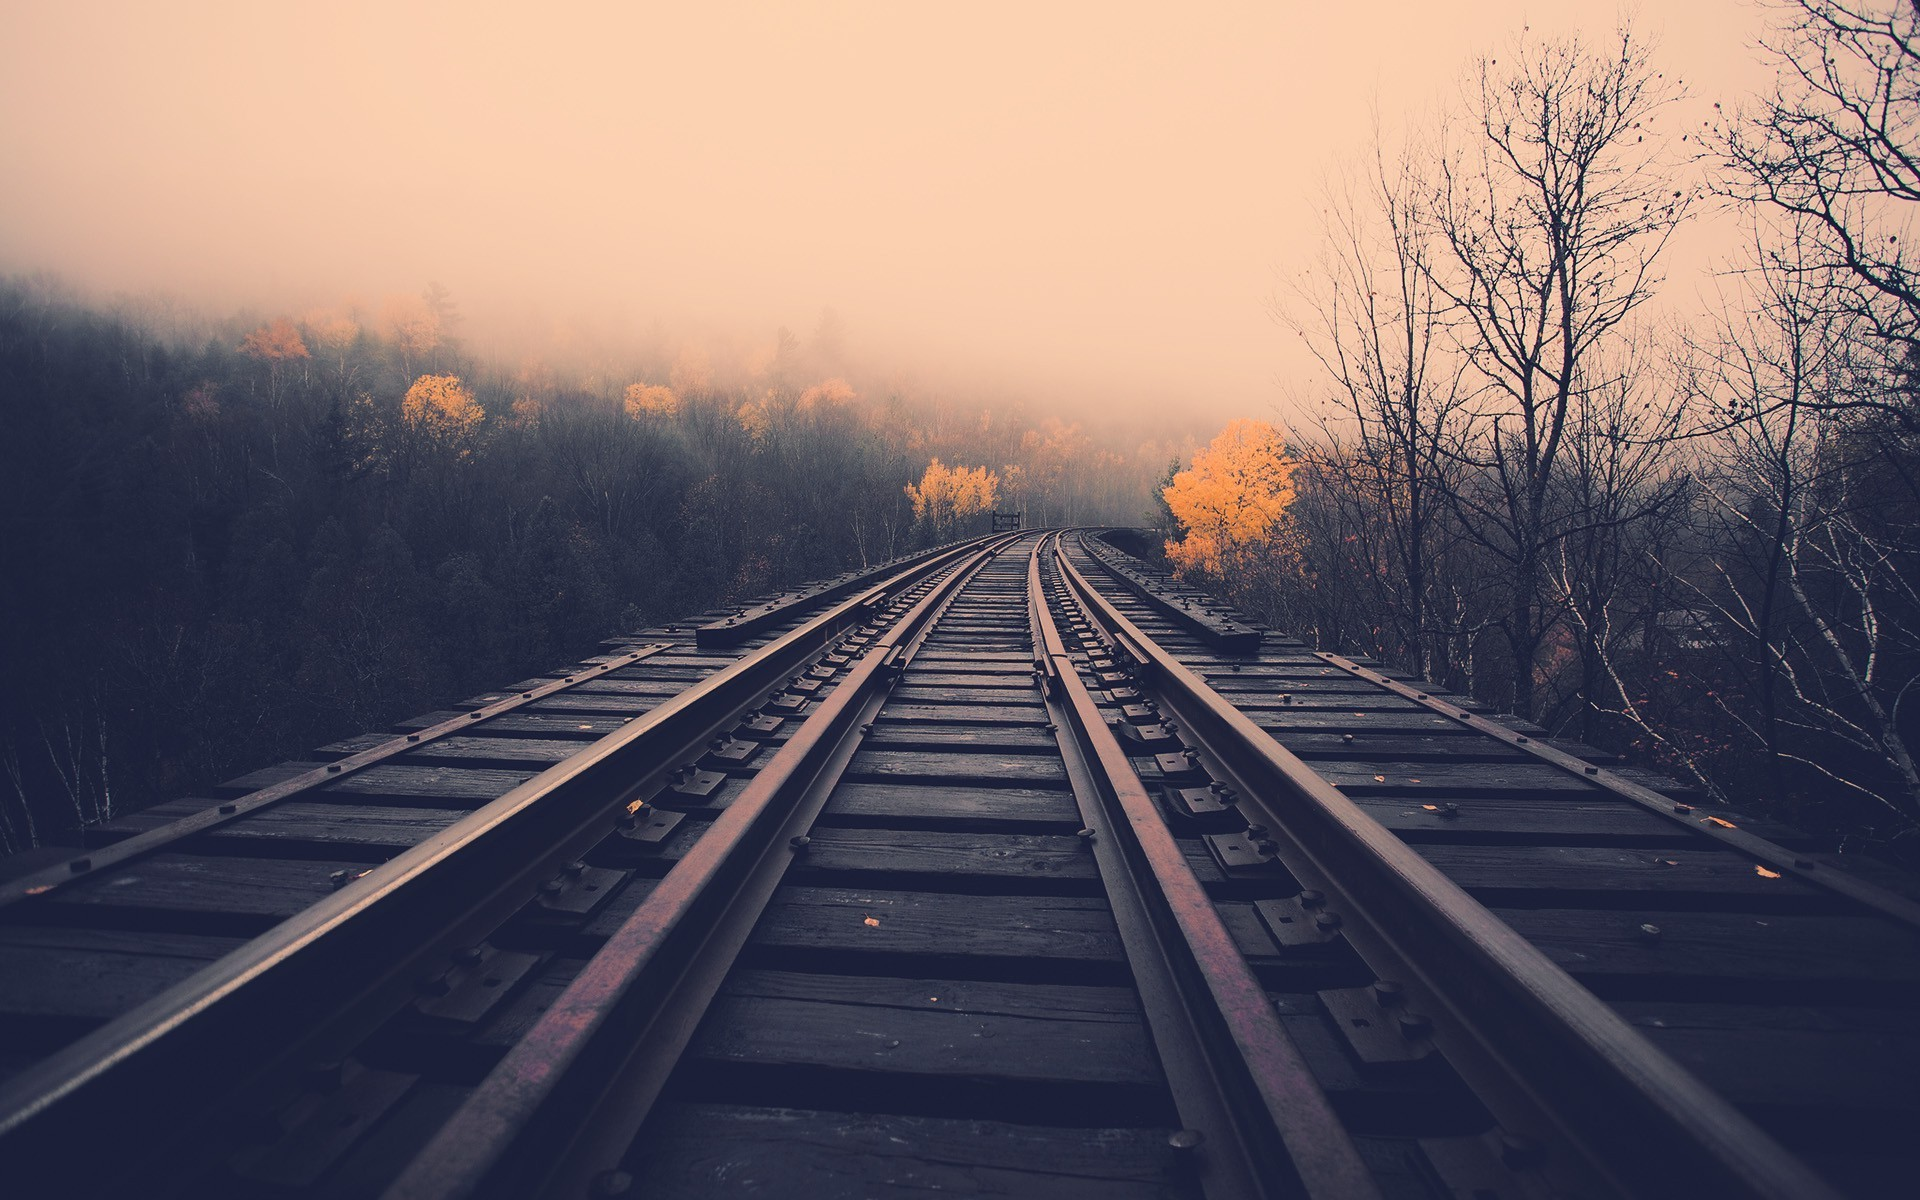 Railroad wallpapers archives - Track wallpaper hd ...